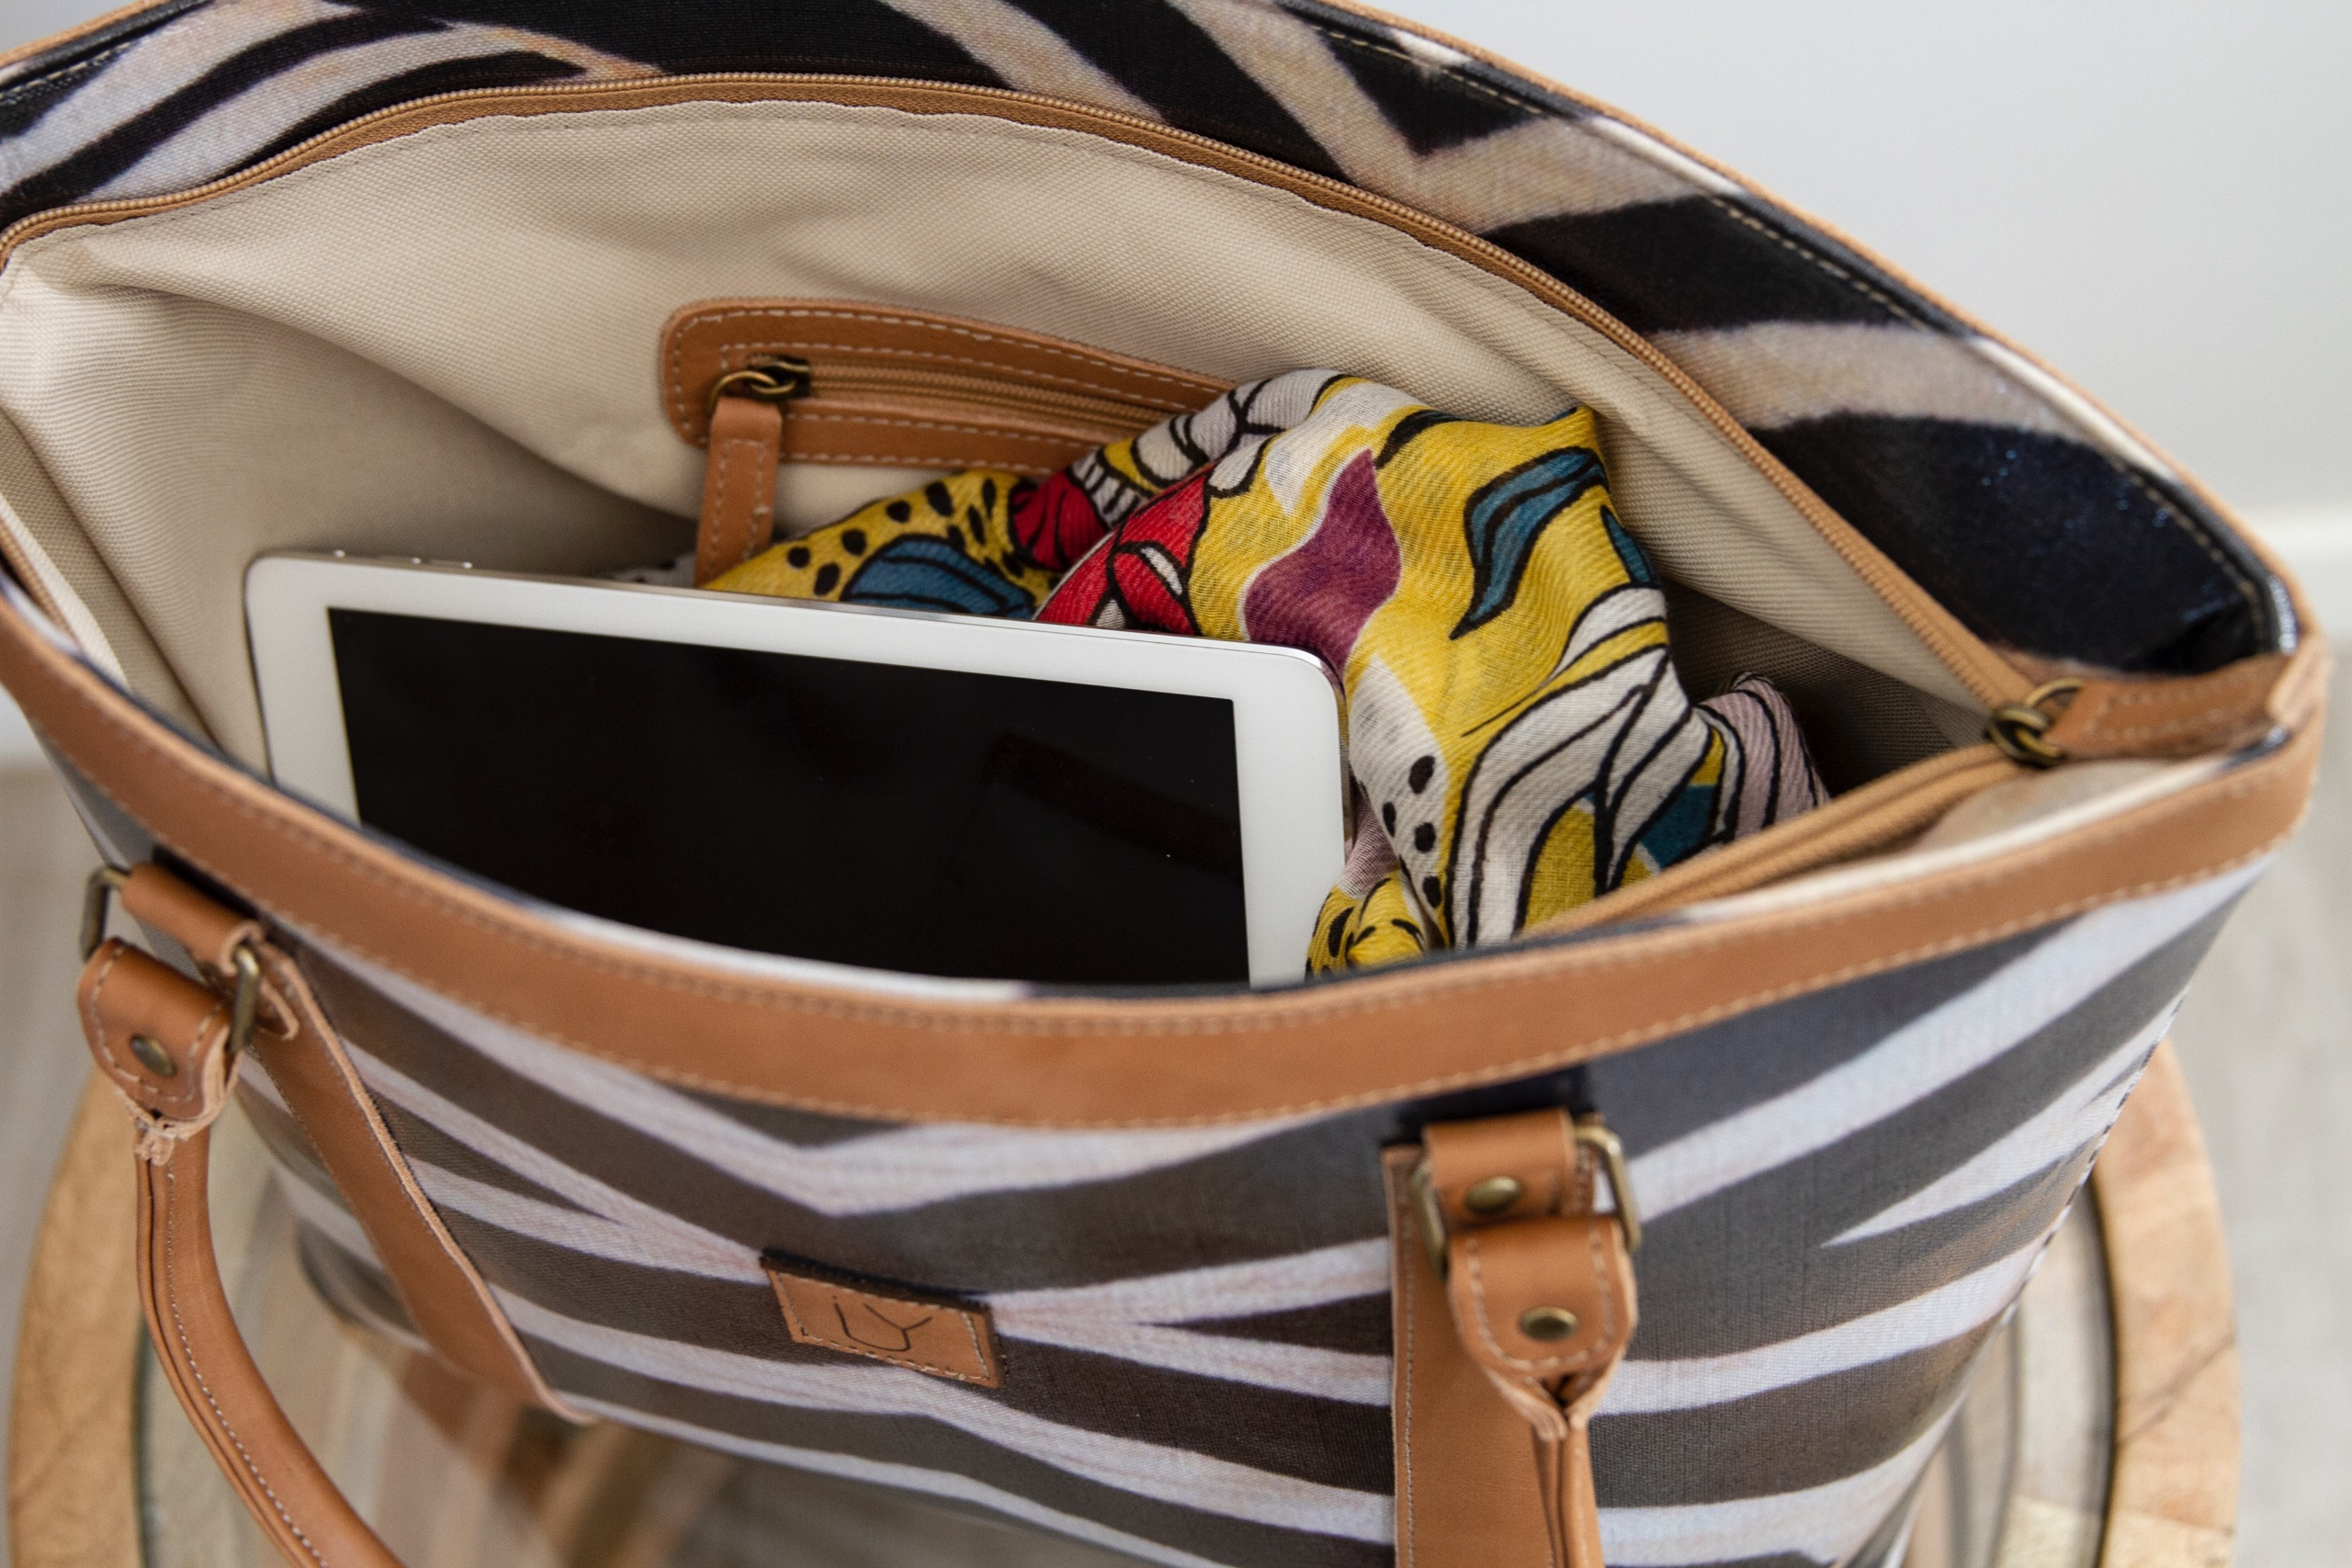 IY-Apparel-Jozi-Tote-Zebra-Inside-iPad